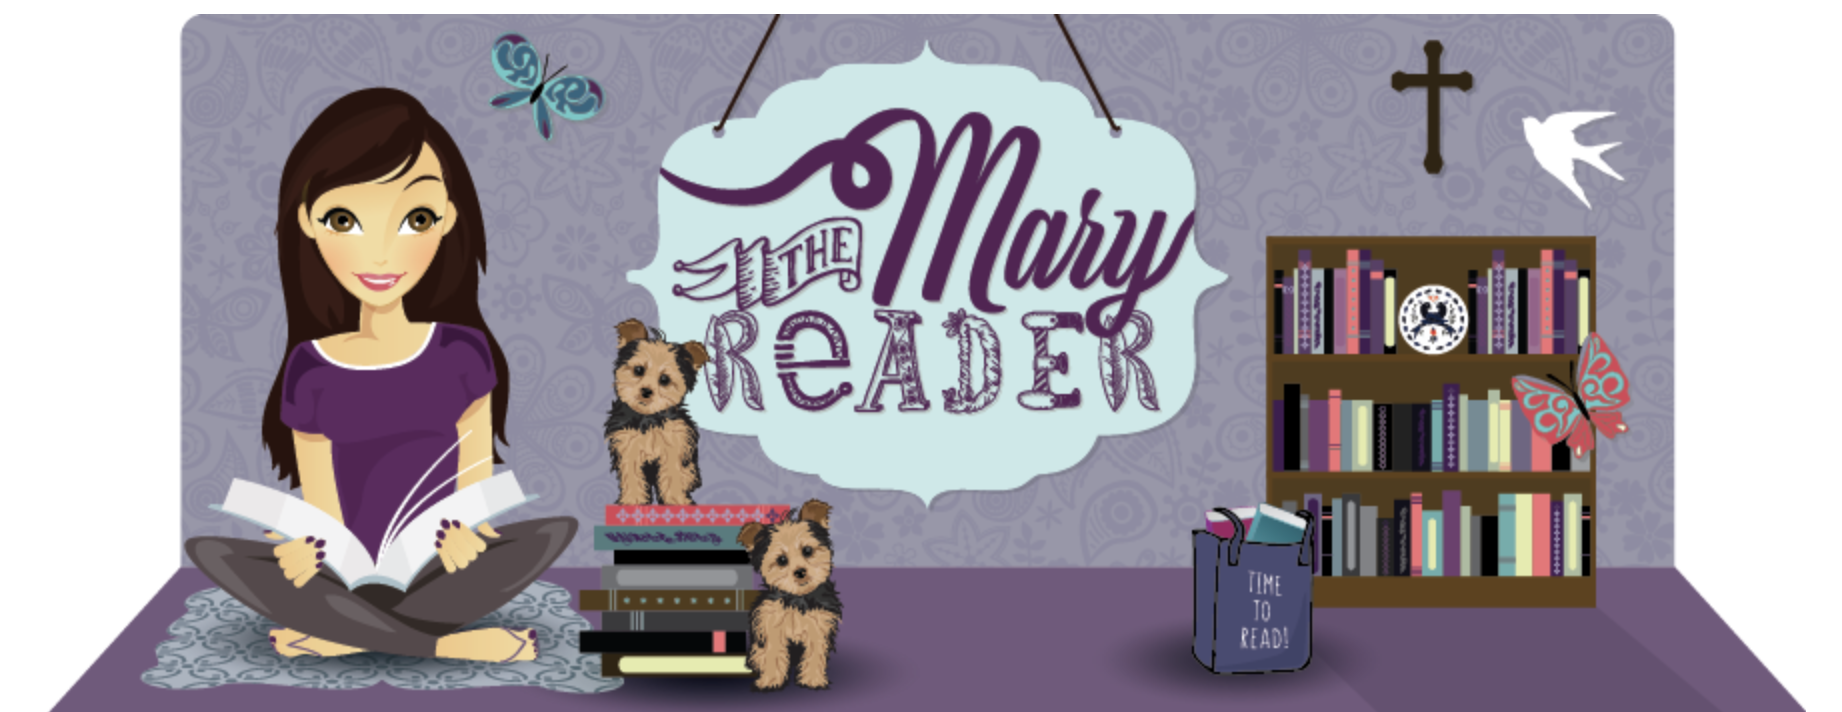 The Mary Book Reader